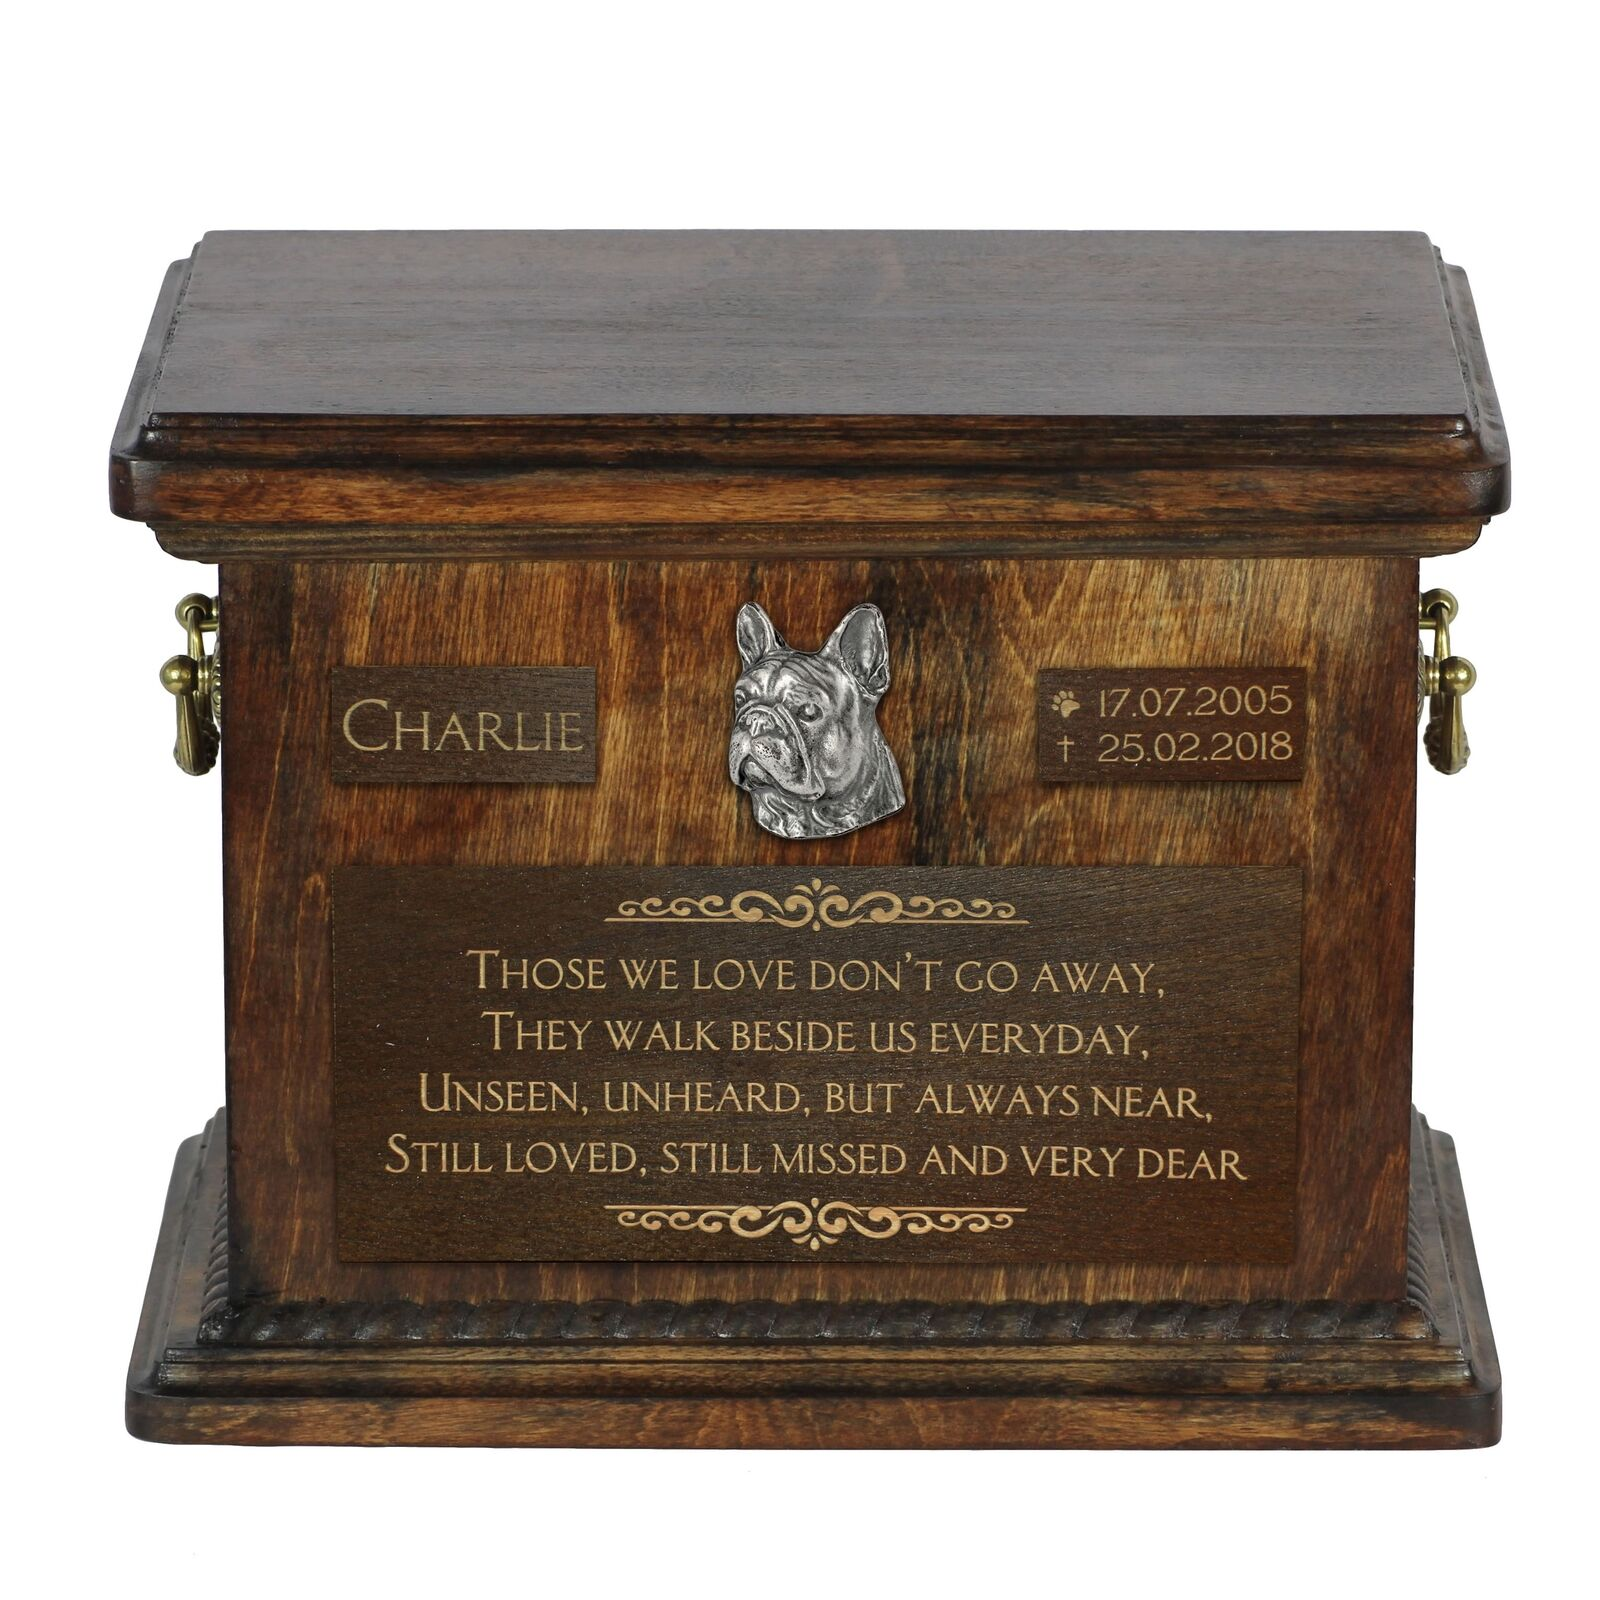 French Bulldog (2) - Urn for dog's ashes with image of a dog, Art Dog